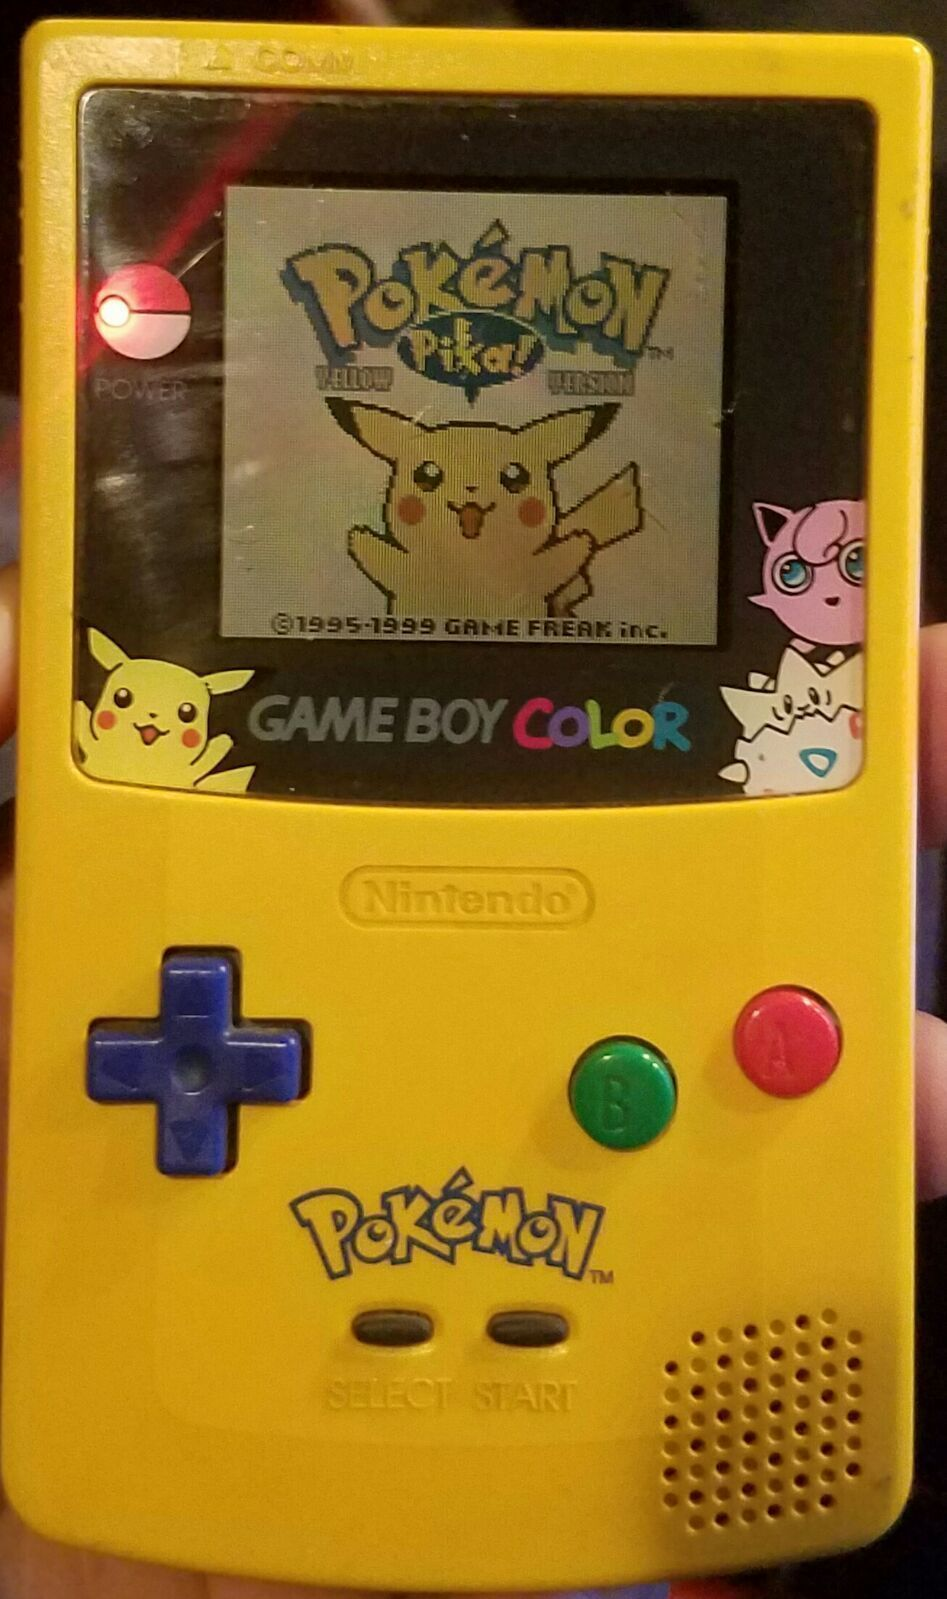 Gameboy color and pokemon yellow - Pokemon Game Boy Color Pokemon Yellow